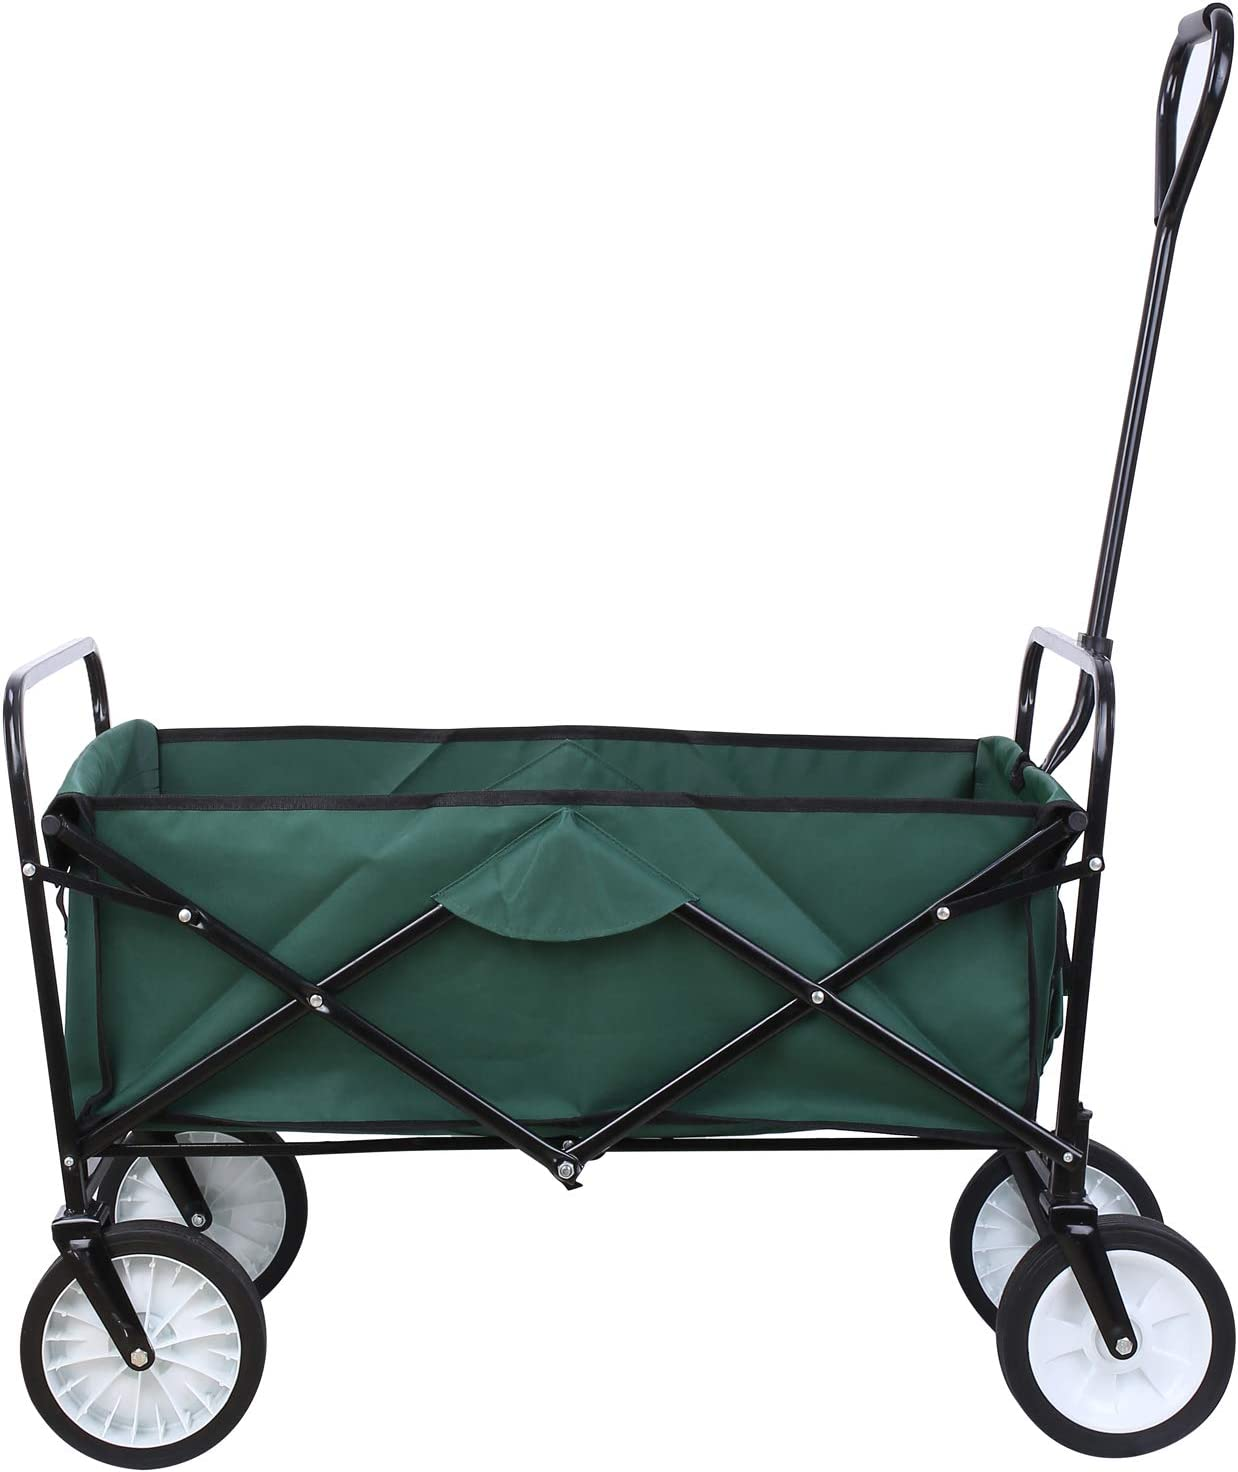 femor Collapsible Folding Outdoor Utility Wagon, Heavy Duty Garden Cart for Shopping Beach Outdoors Dark Green